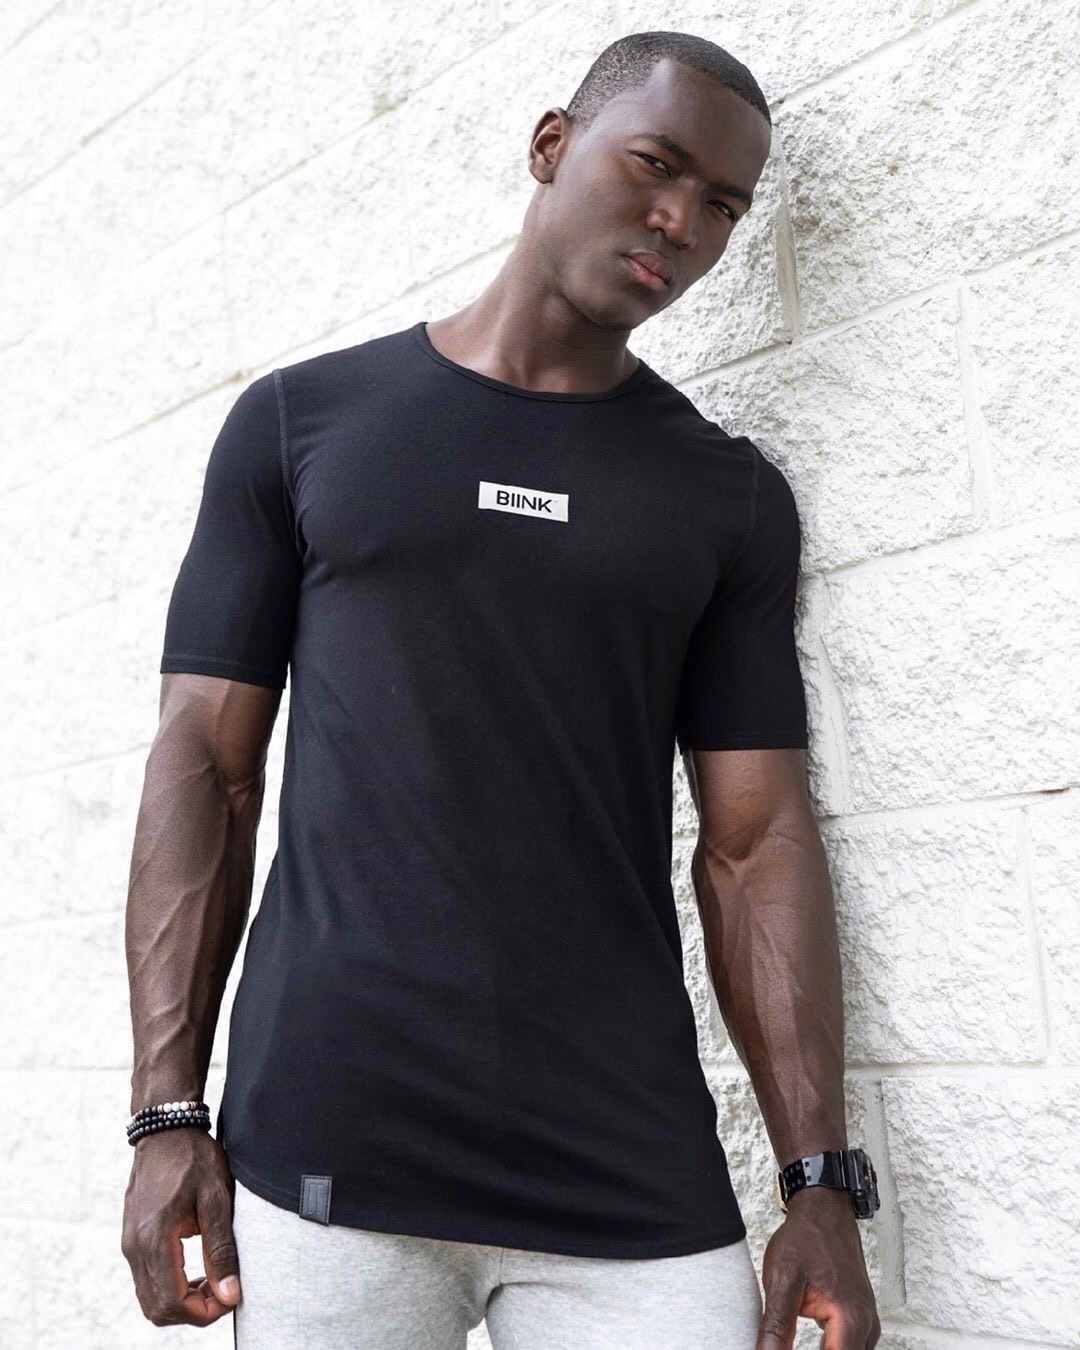 Bobby T leaning against a white brick wall wearing a black BINK fitness top